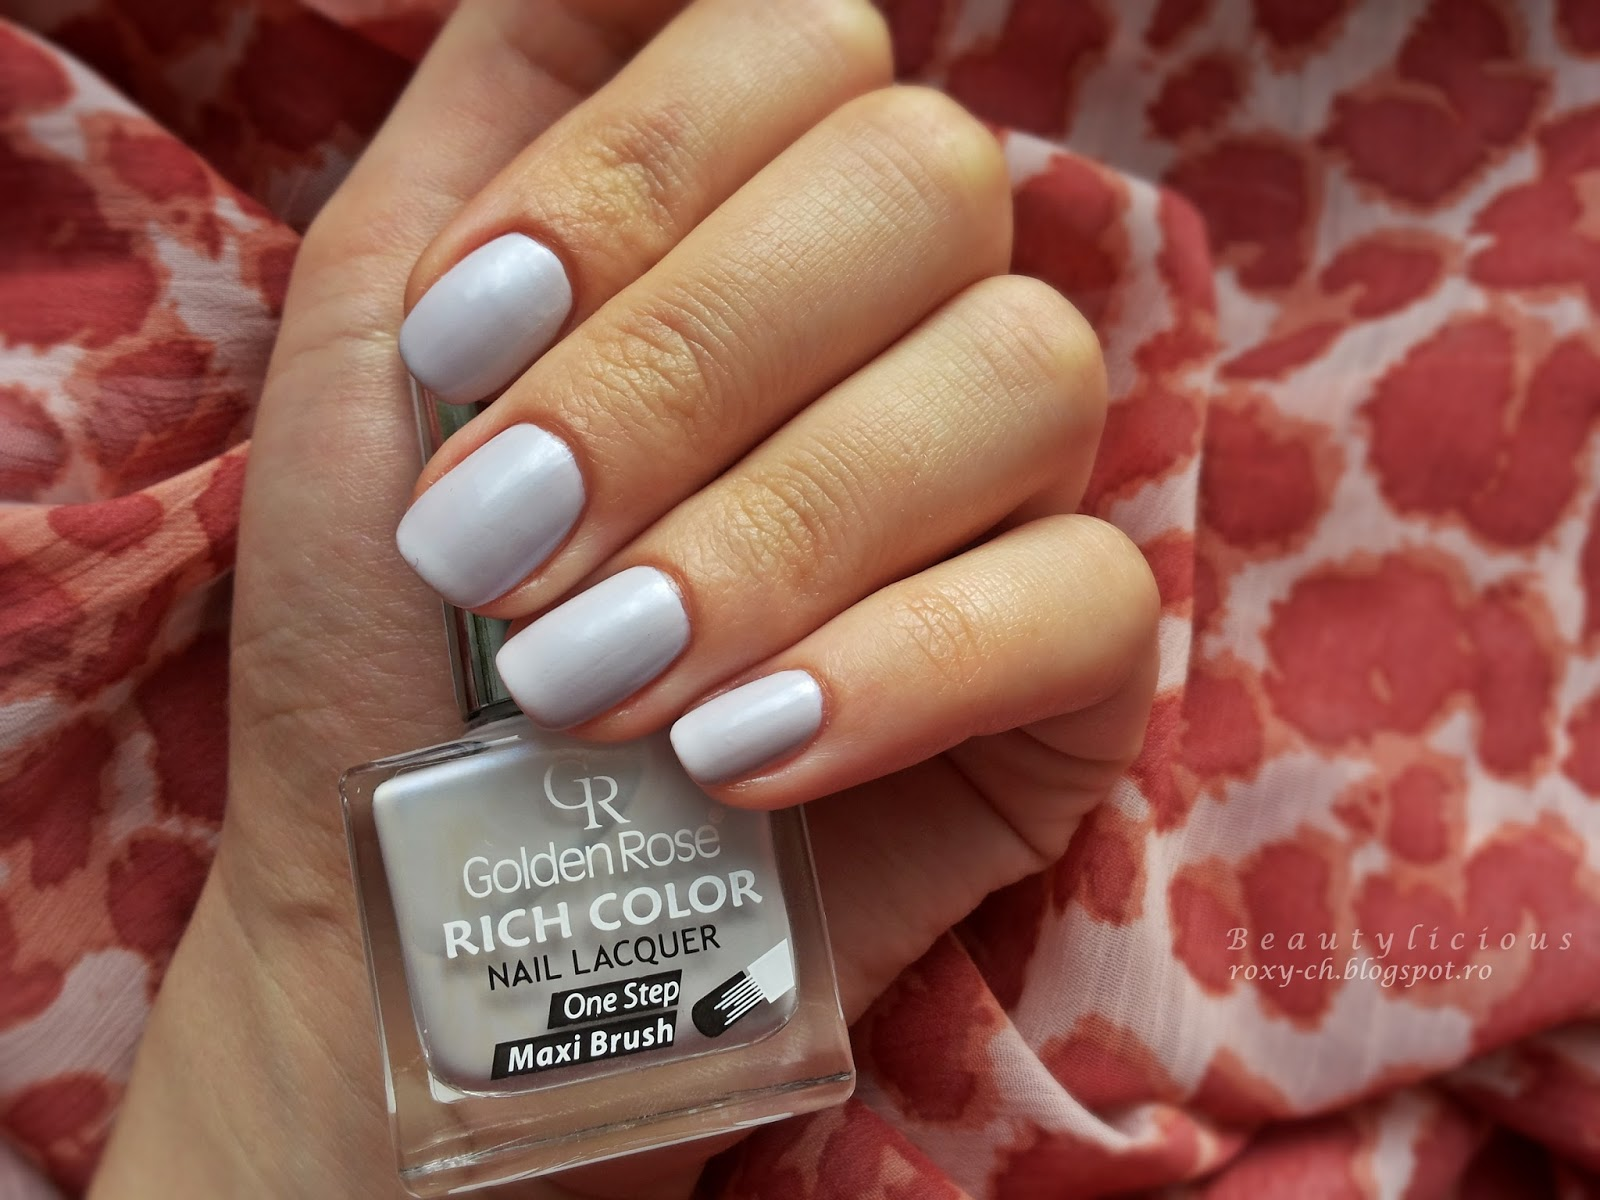 The Formula Is Fluid And Easy To Apply It Needs Two Coats For Full Coverage Whats Special About This Nail Polish That Has Purple Blue Reflexions